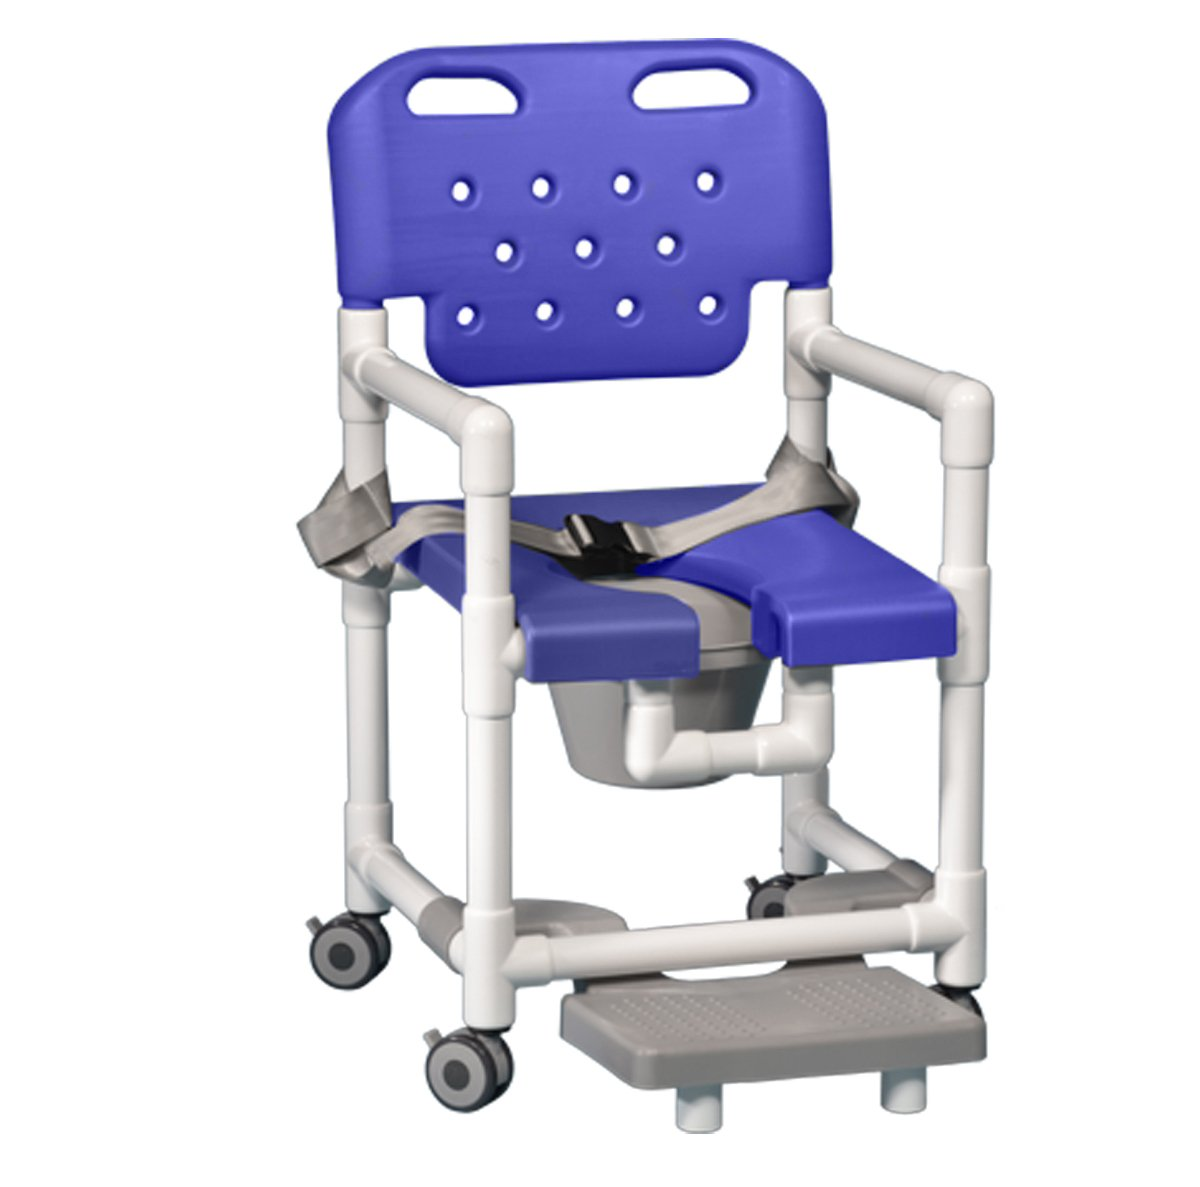 Innovative Products Unlimited ELT817 P FRSB B Elite Shower Commode with Footrest and Seat Belt, 21 lb